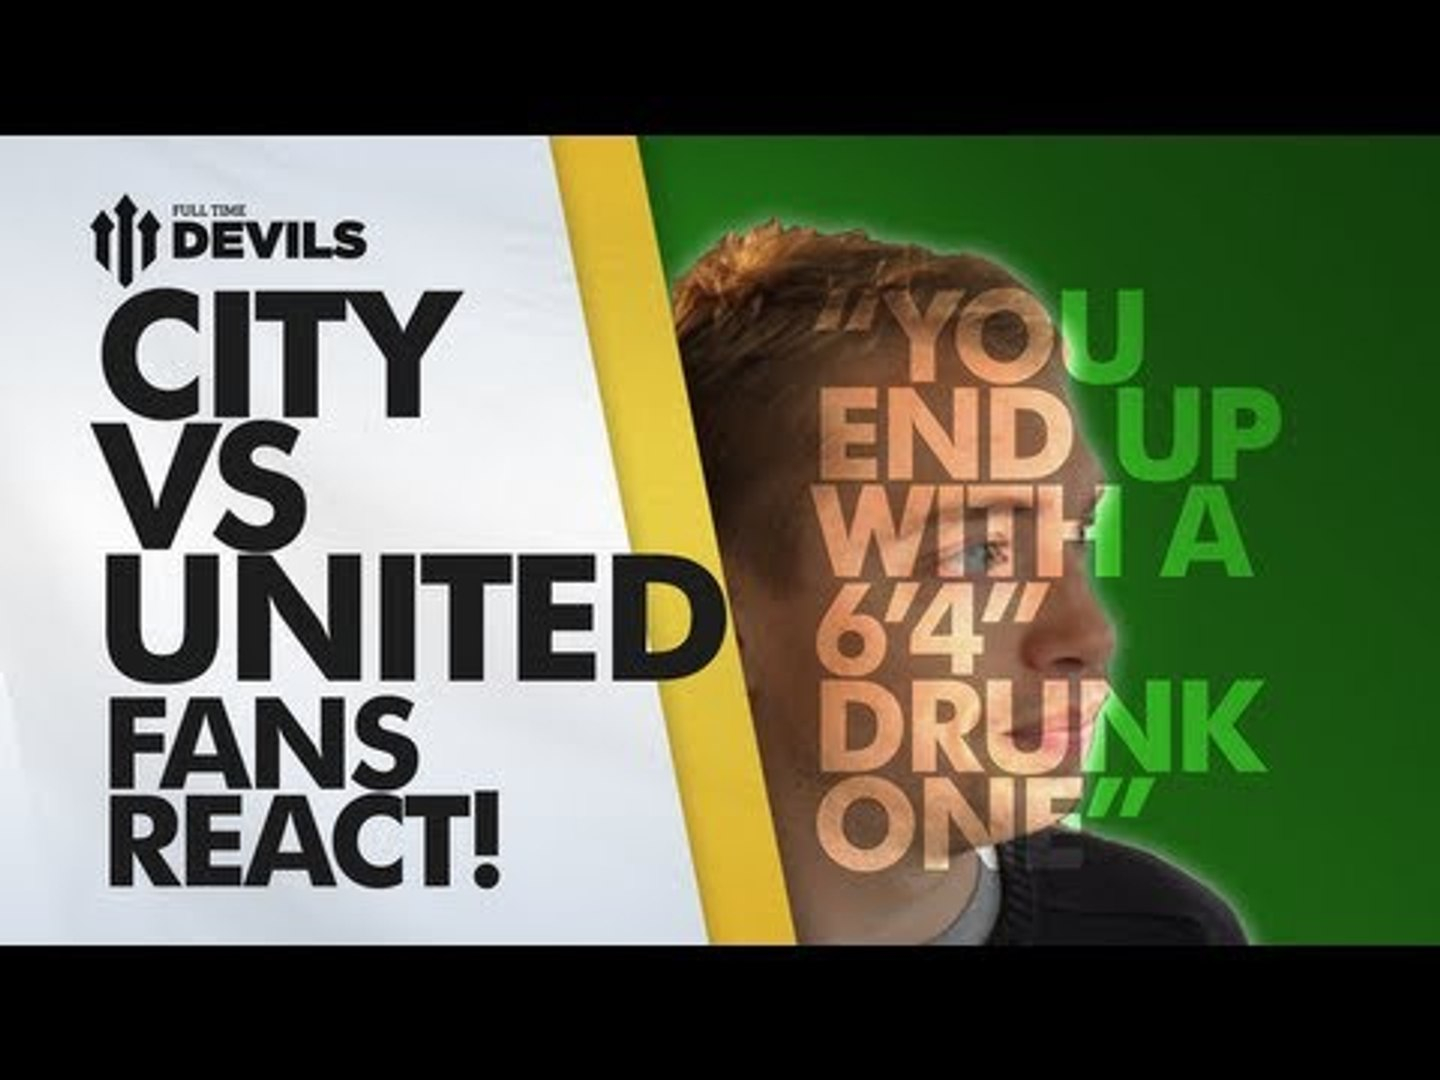 What Went Wrong? Fan Tells Moyes! | Manchester City vs Manchester United 4-1 | DEVILS